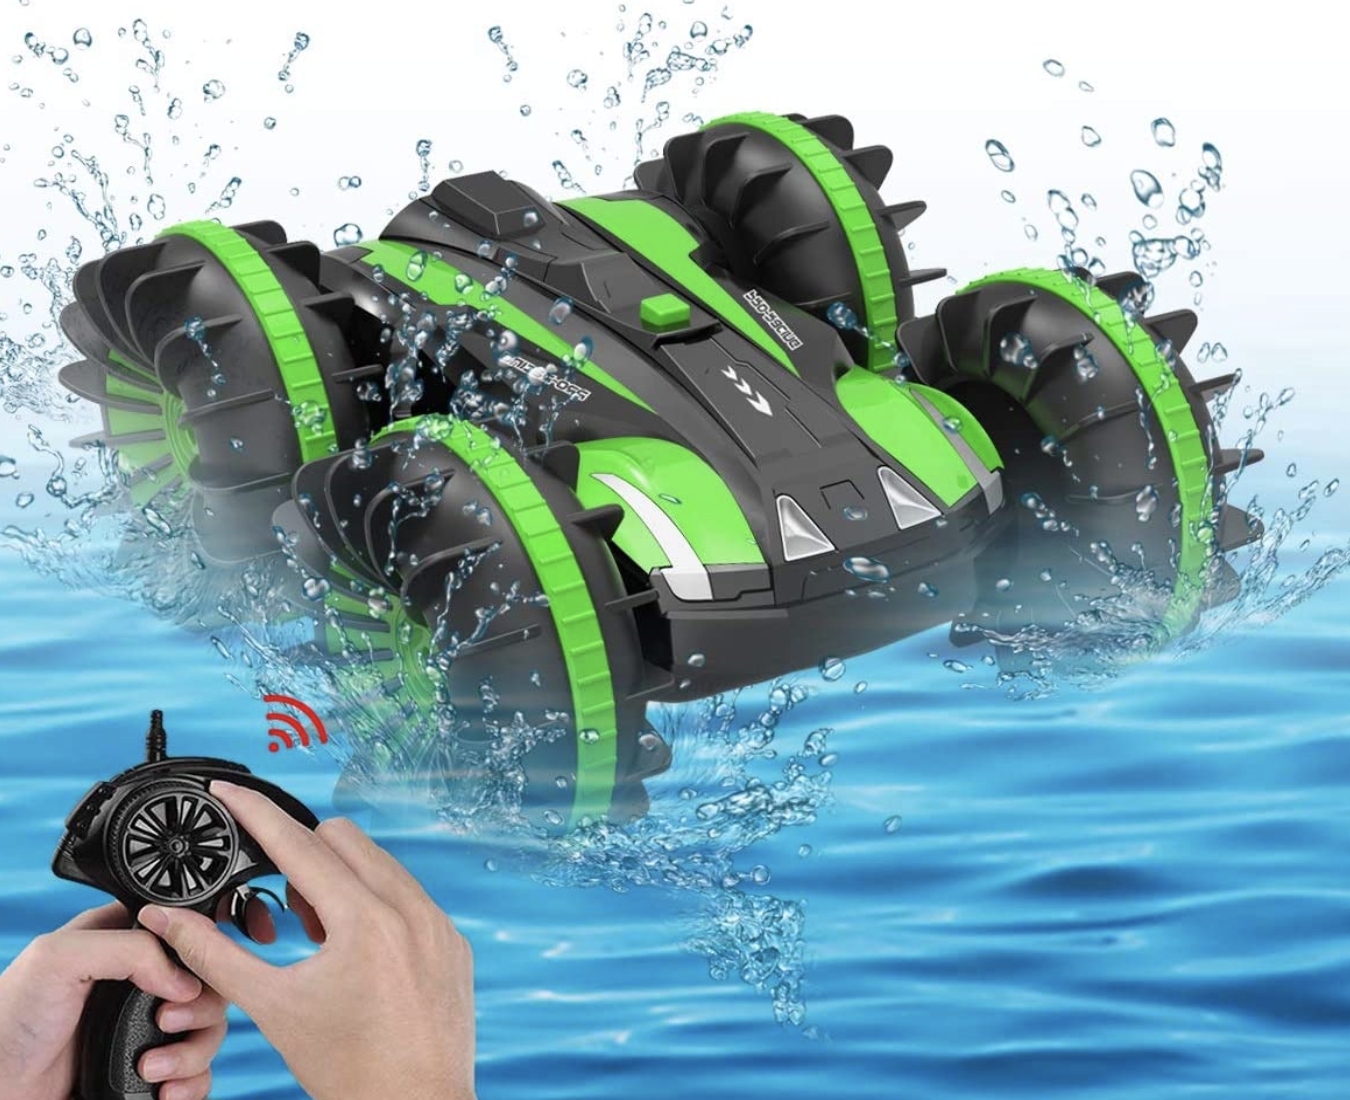 Seckton Toys for 5-10 Year Old Boys Amphibious RC Car for Kids 2.4 GHz Remote Control Boat Waterproof RC Monster Truck Stunt Car 4WD Remote Control Vehicle Girls Gifts All Terrain Water Beach Pool Toy